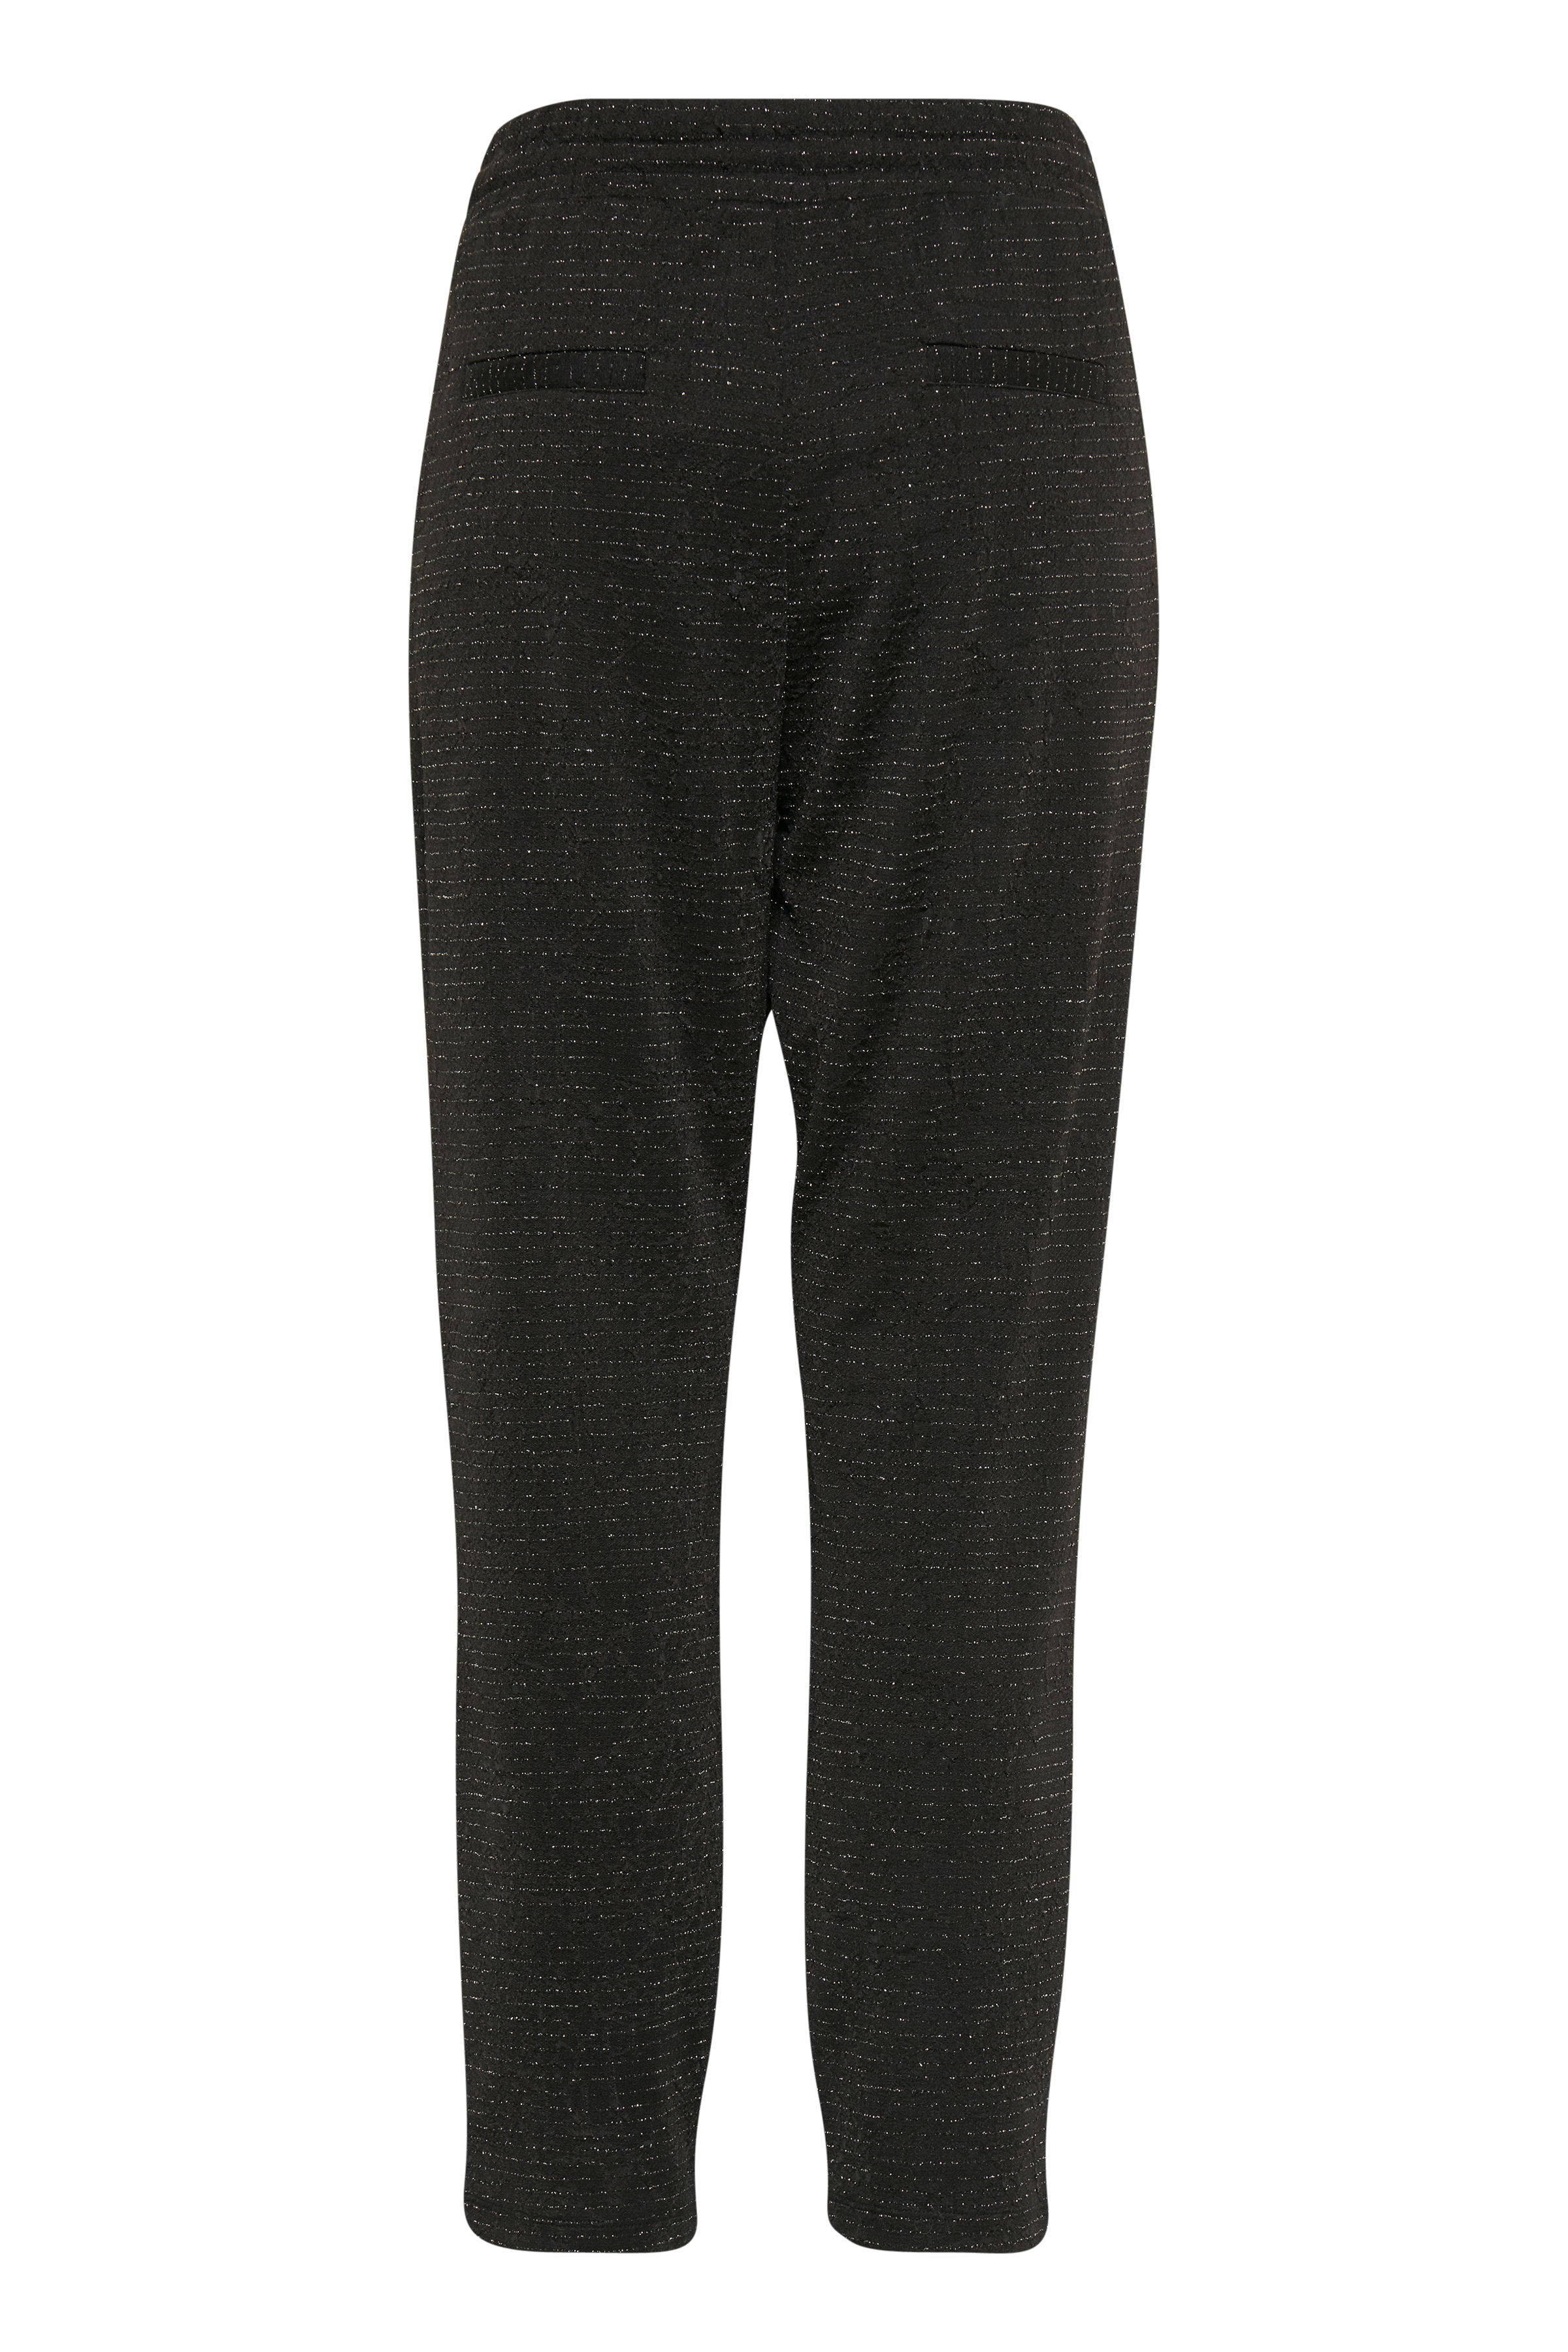 Black w. lurex Pants Casual fra b.young – Køb Black w. lurex Pants Casual fra str. S-XXL her